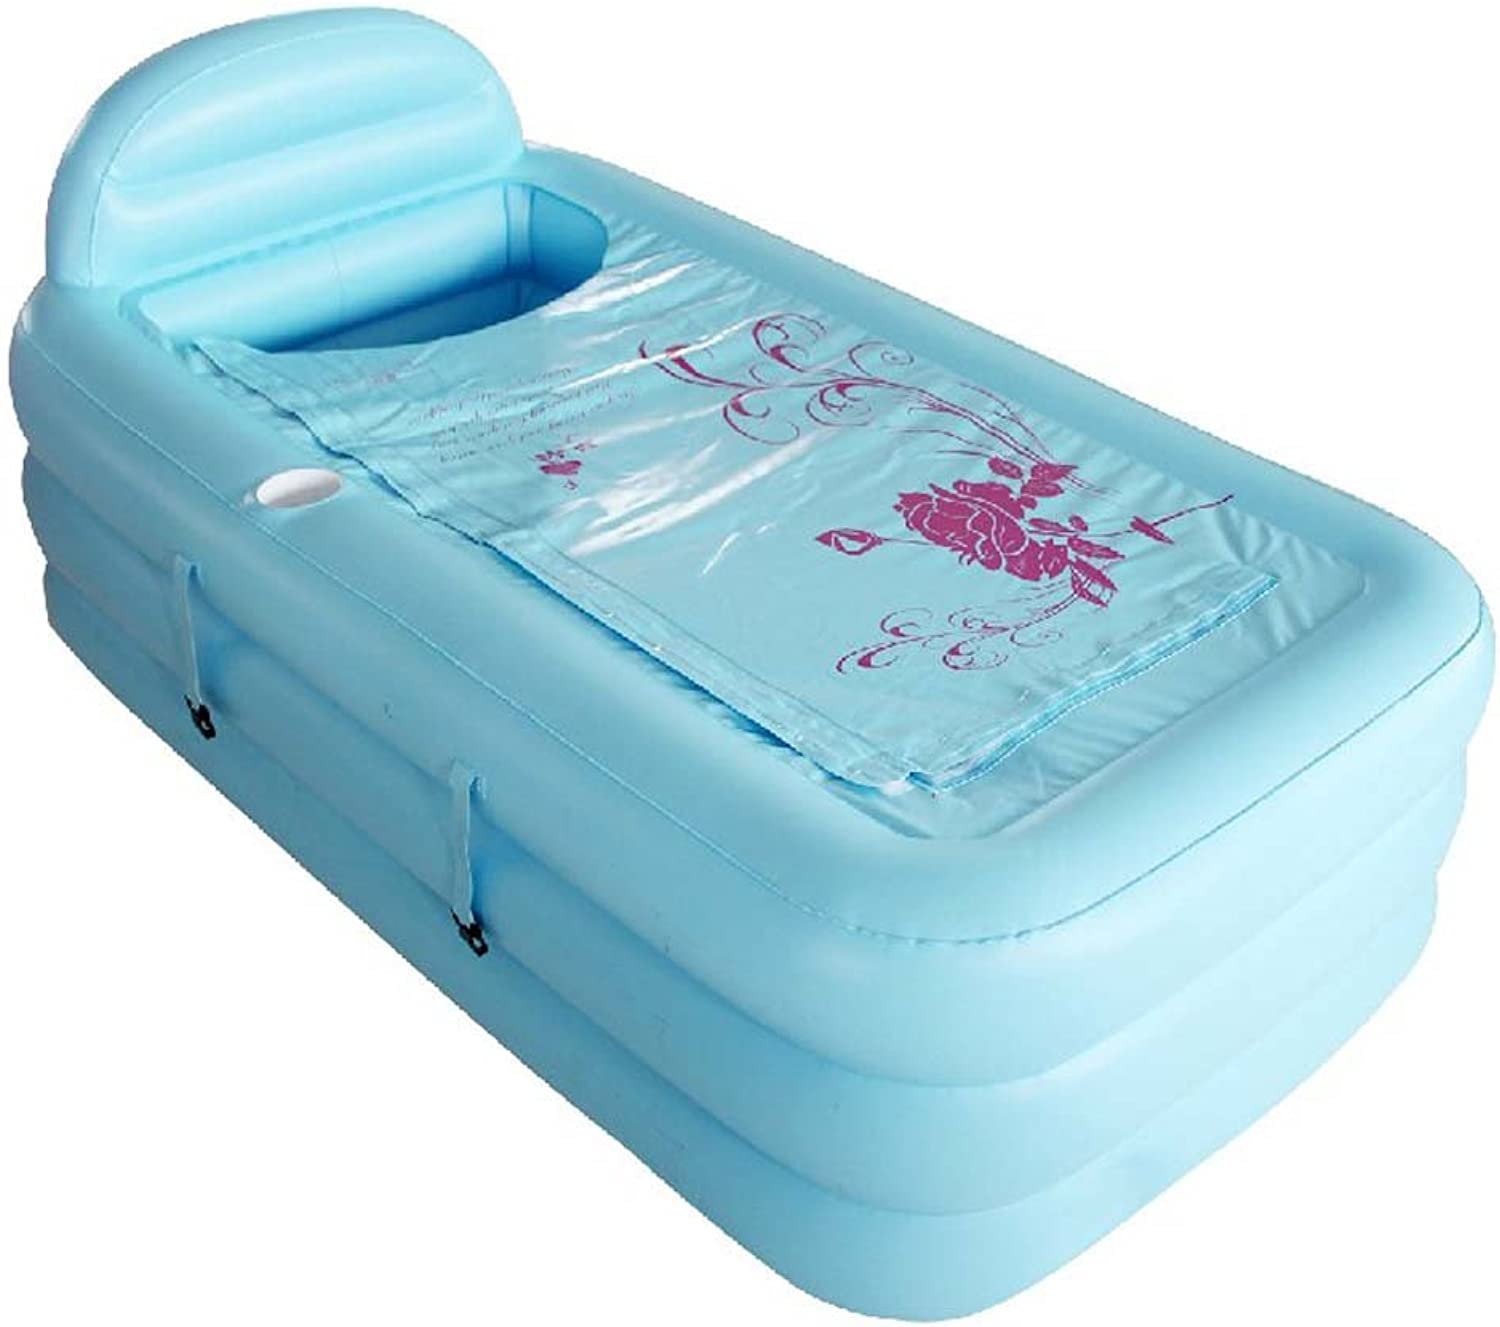 HAO SHOP Inflatable Tub - SPA Large Plastic Tub-Thickening Collapsible Adult Bath for Bedroom Bathroom Living Room Swimming Pool Garden (color   bluee)